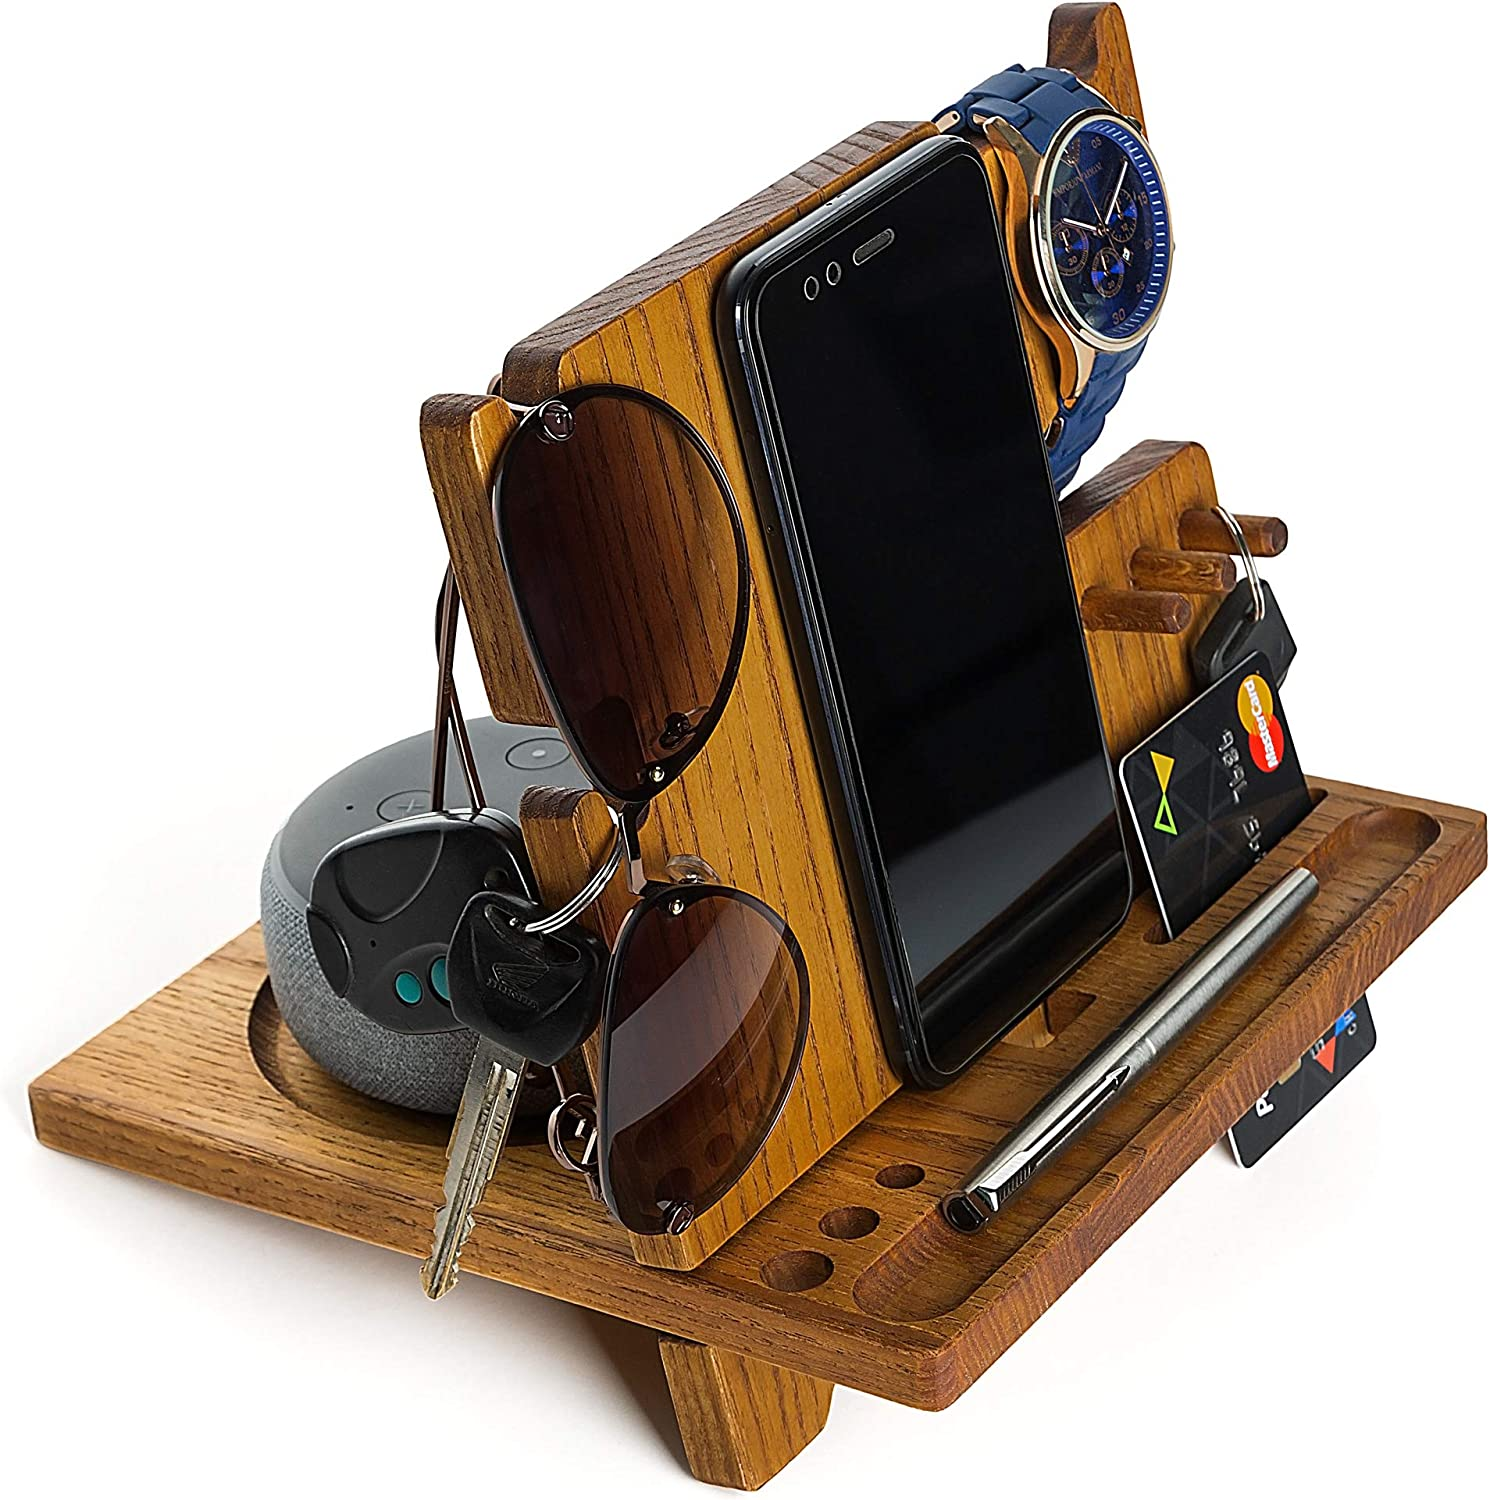 Wooden Phone Docking Station Desk Organizer Night Stand for iPhone Watch Sunglasses Keys Top Men's Anniversary Christmas for Dad Husband Men Him Father's Day Present Bed Side Valet Tray ash-Tree Wood